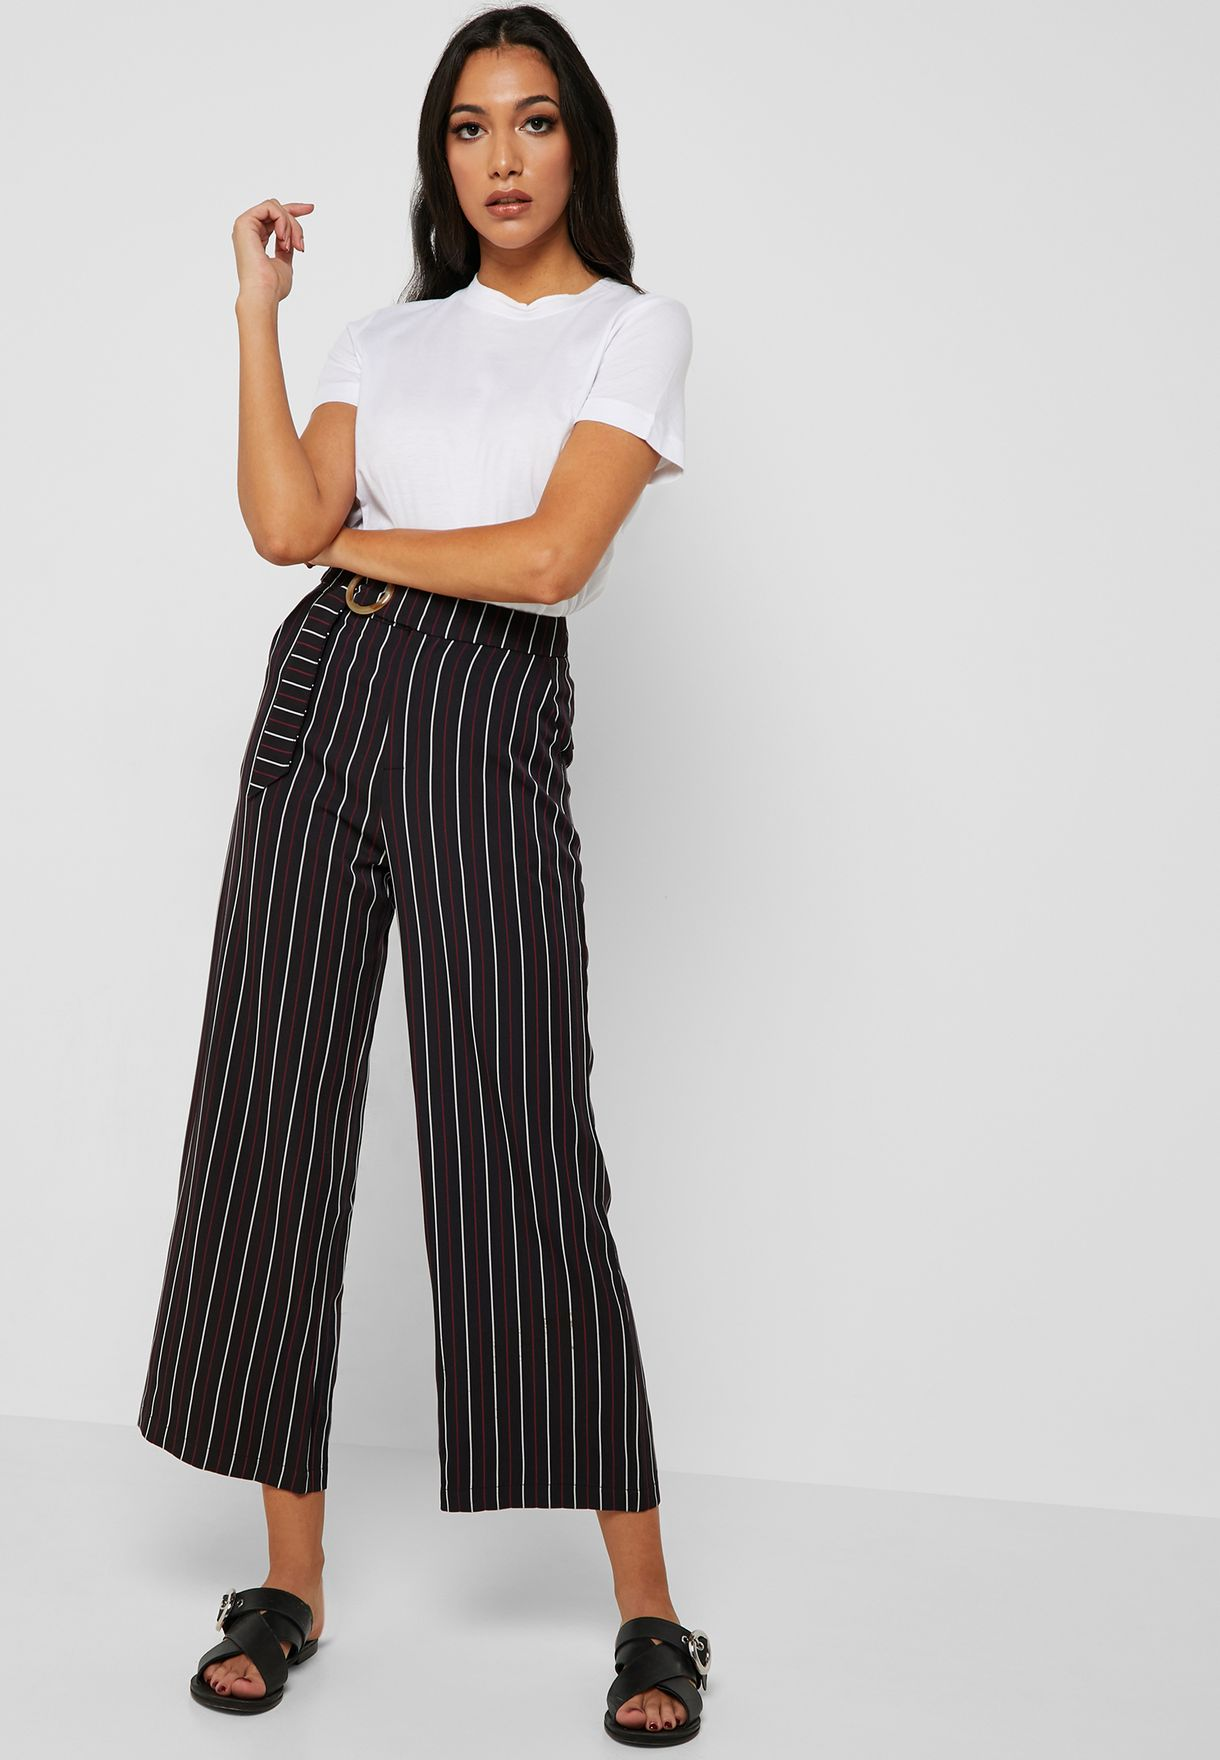 Buy Ella Stripes Striped Ring Belted Cropped Pants For Women, Uae 13288at08kyp